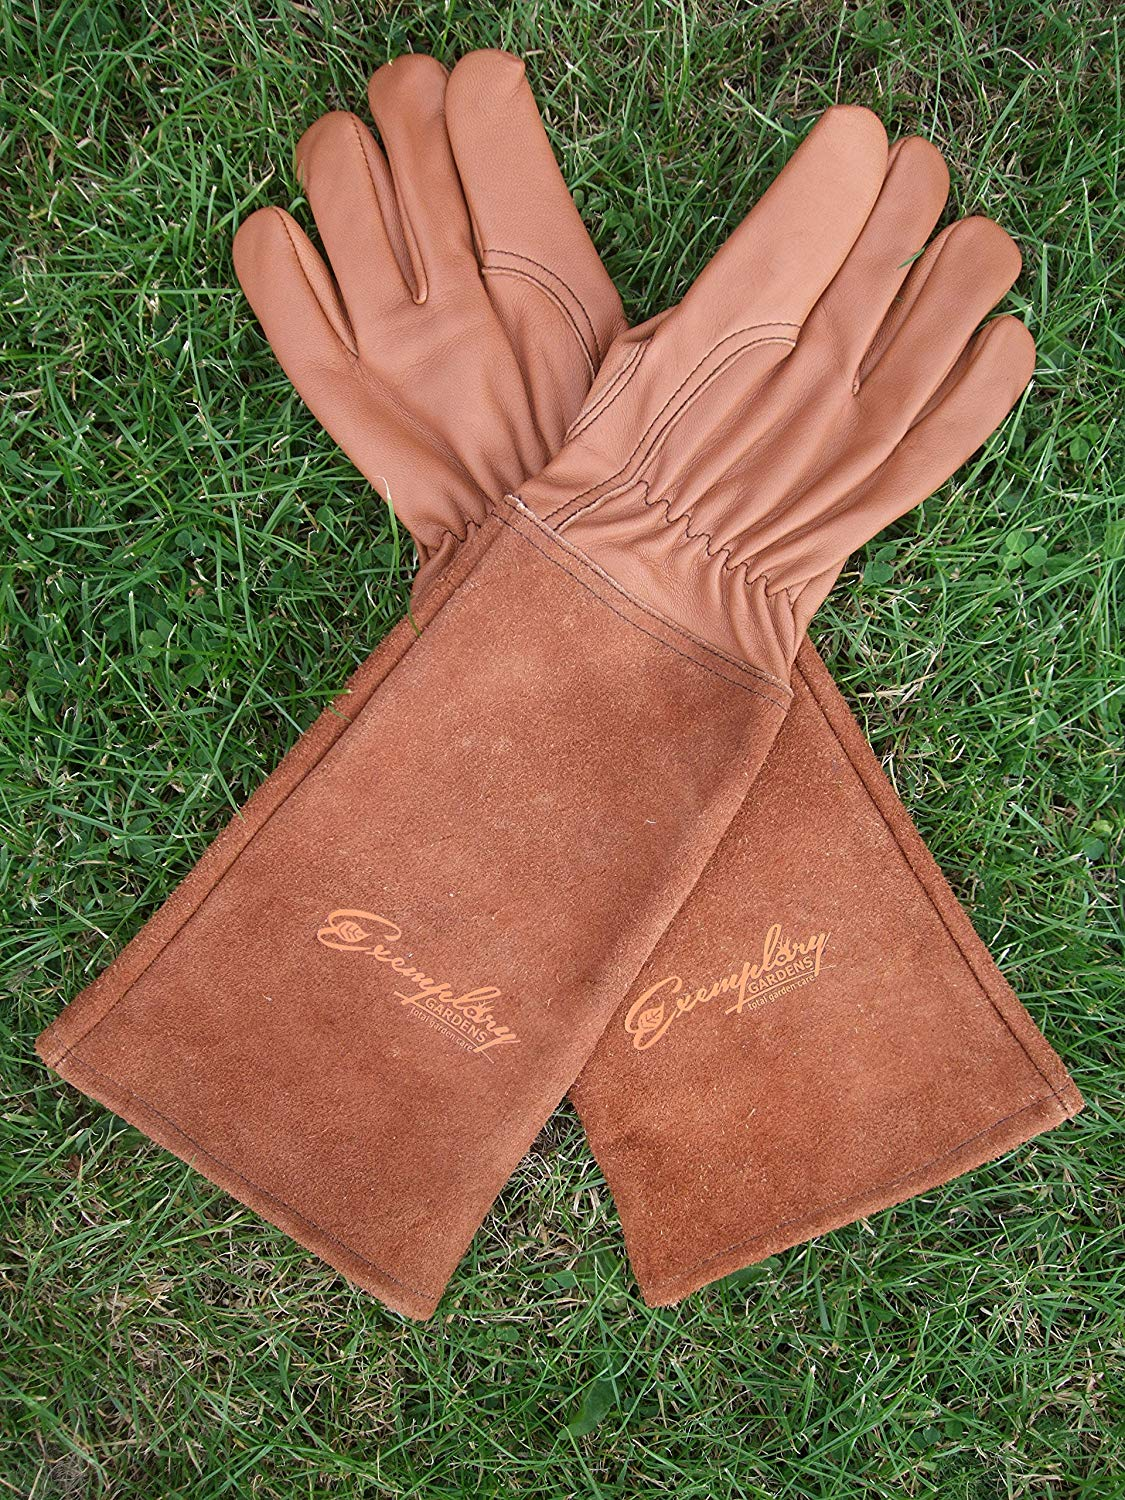 Brown leather rose pruning gloves laying in grass